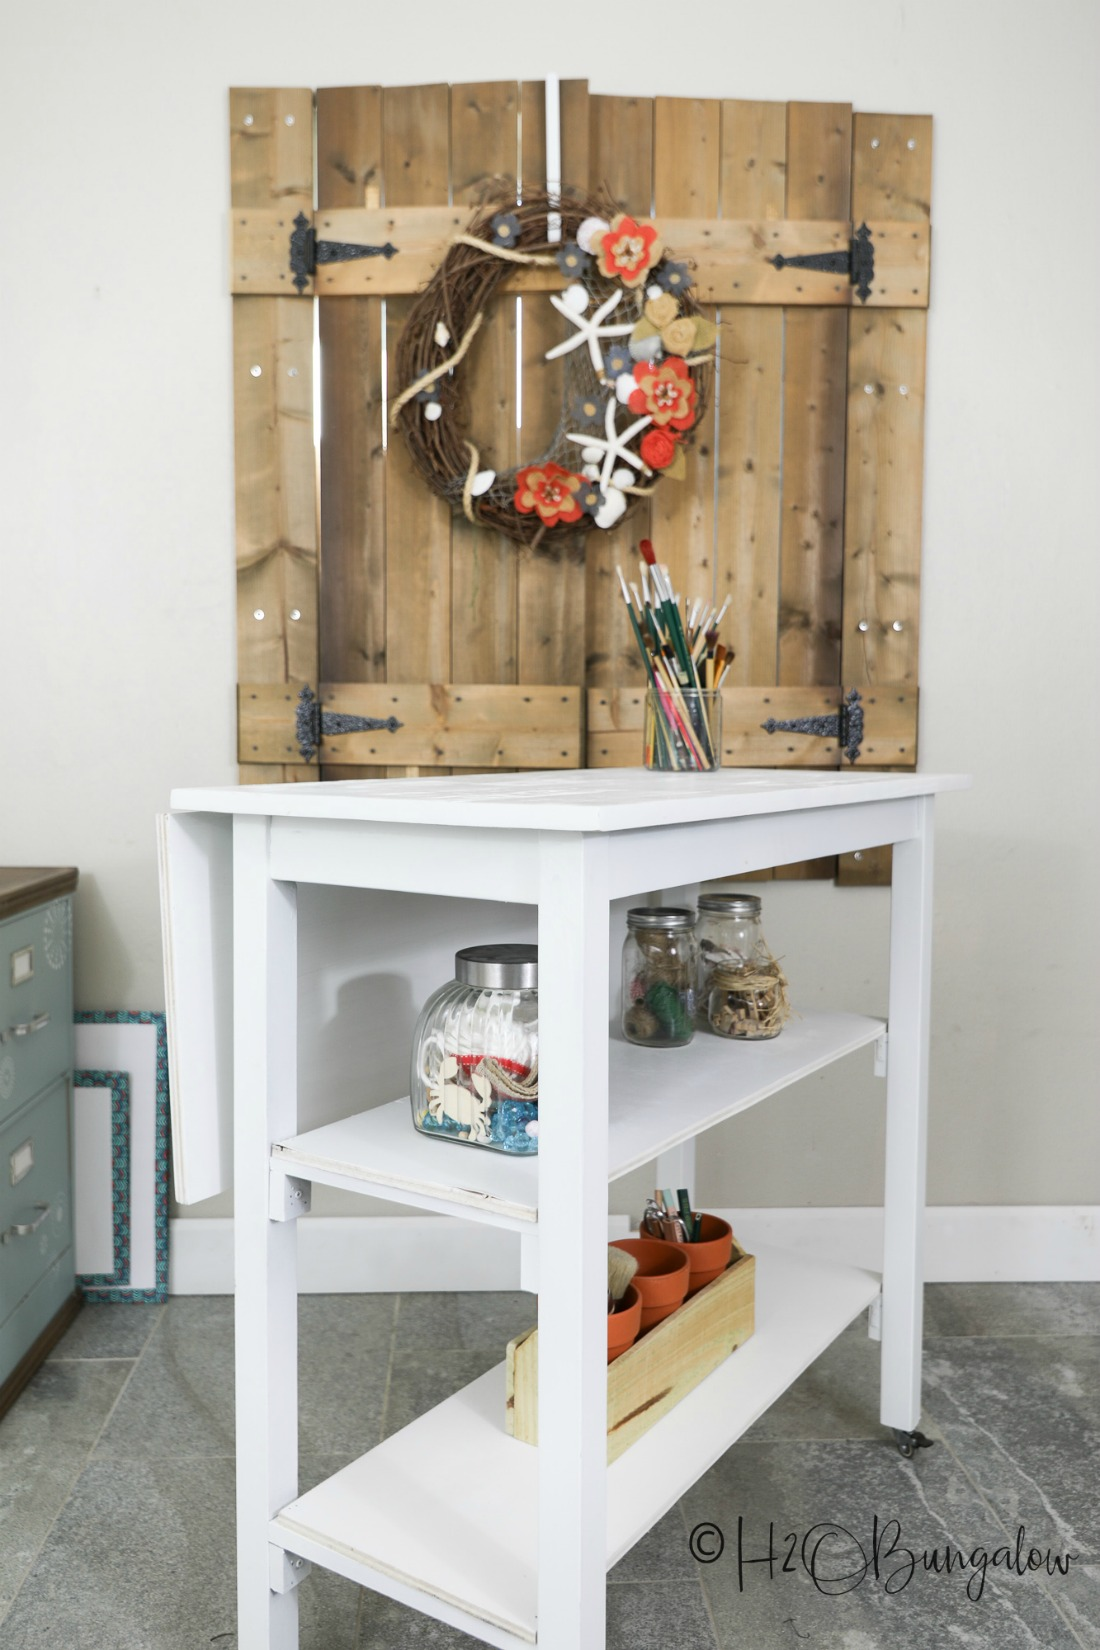 DIY rolling worktable with shelves added